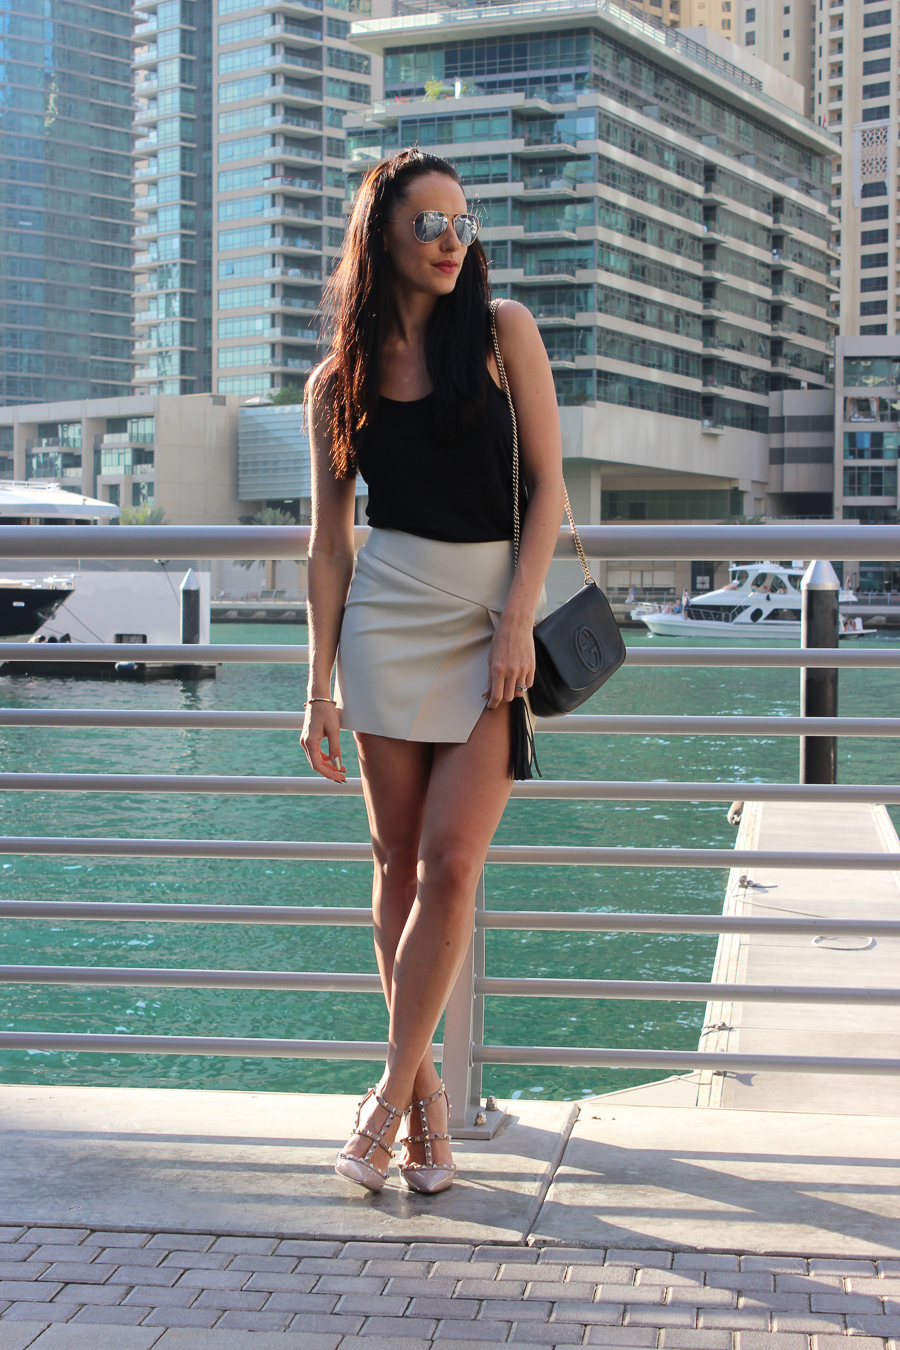 clutch and carry on - uk travel blogger - dubai travel blog - sabrina chakici -_-108